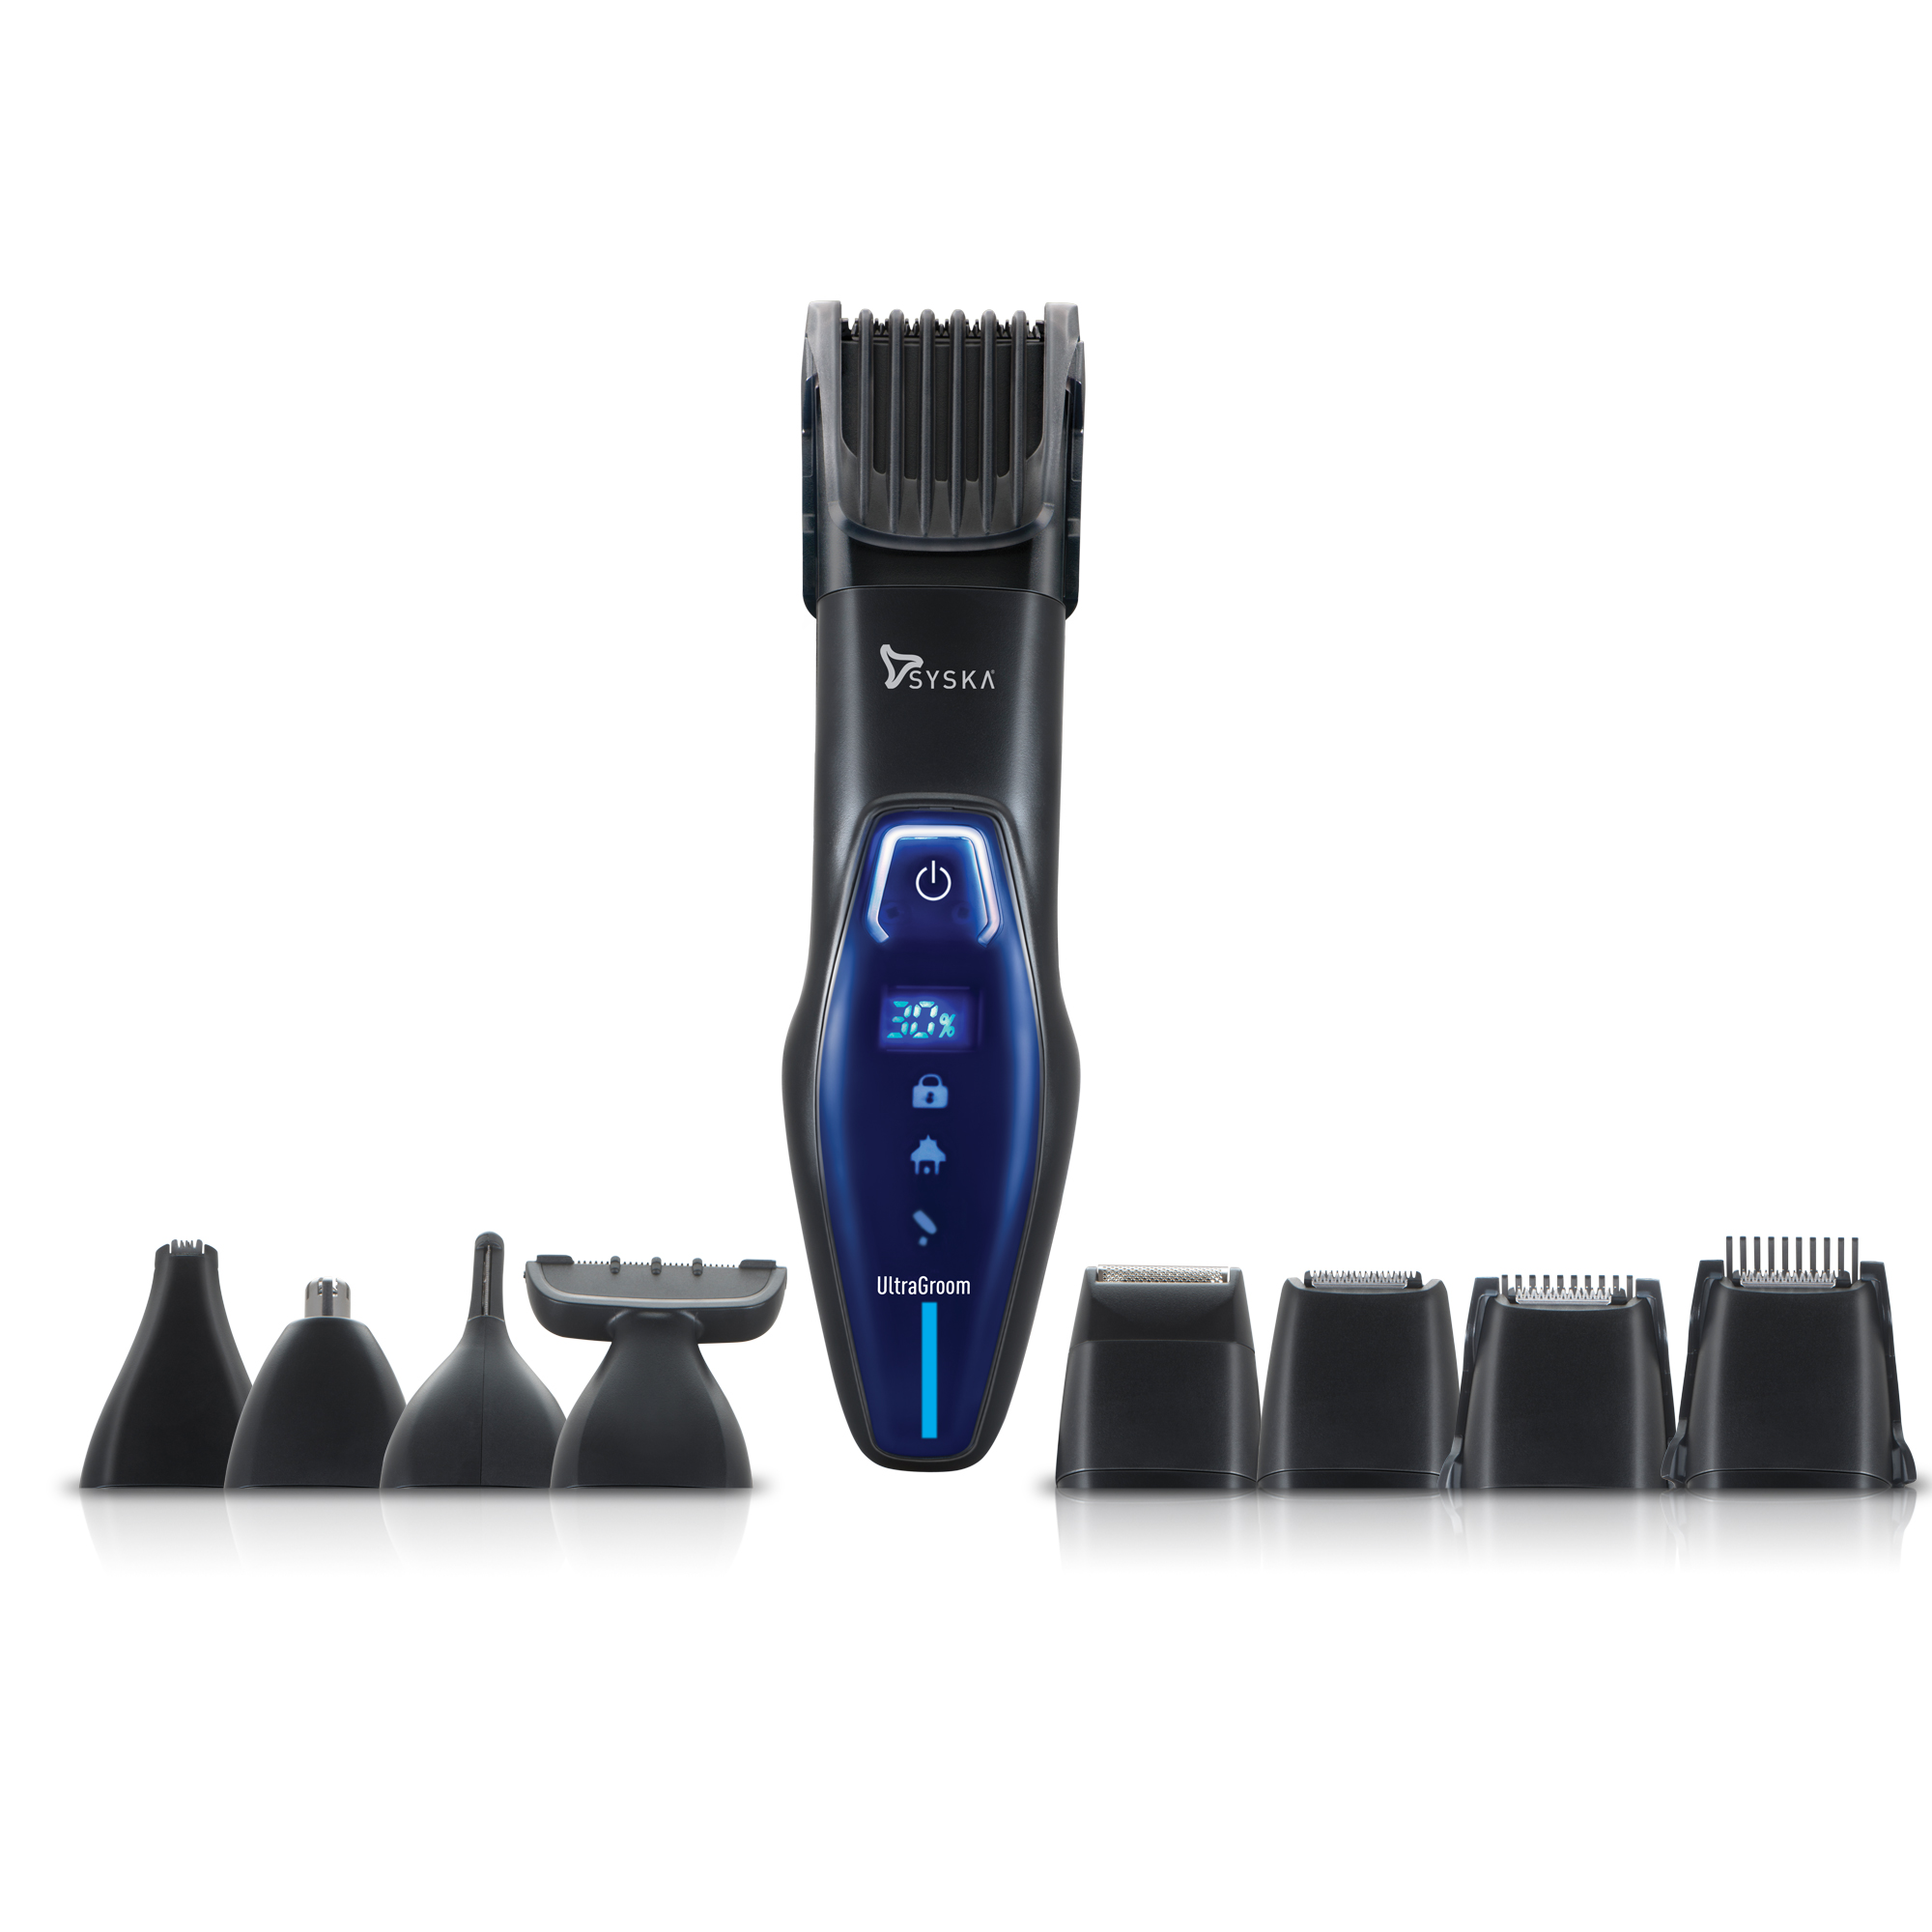 Syska HT5000K UltraGroom Kit